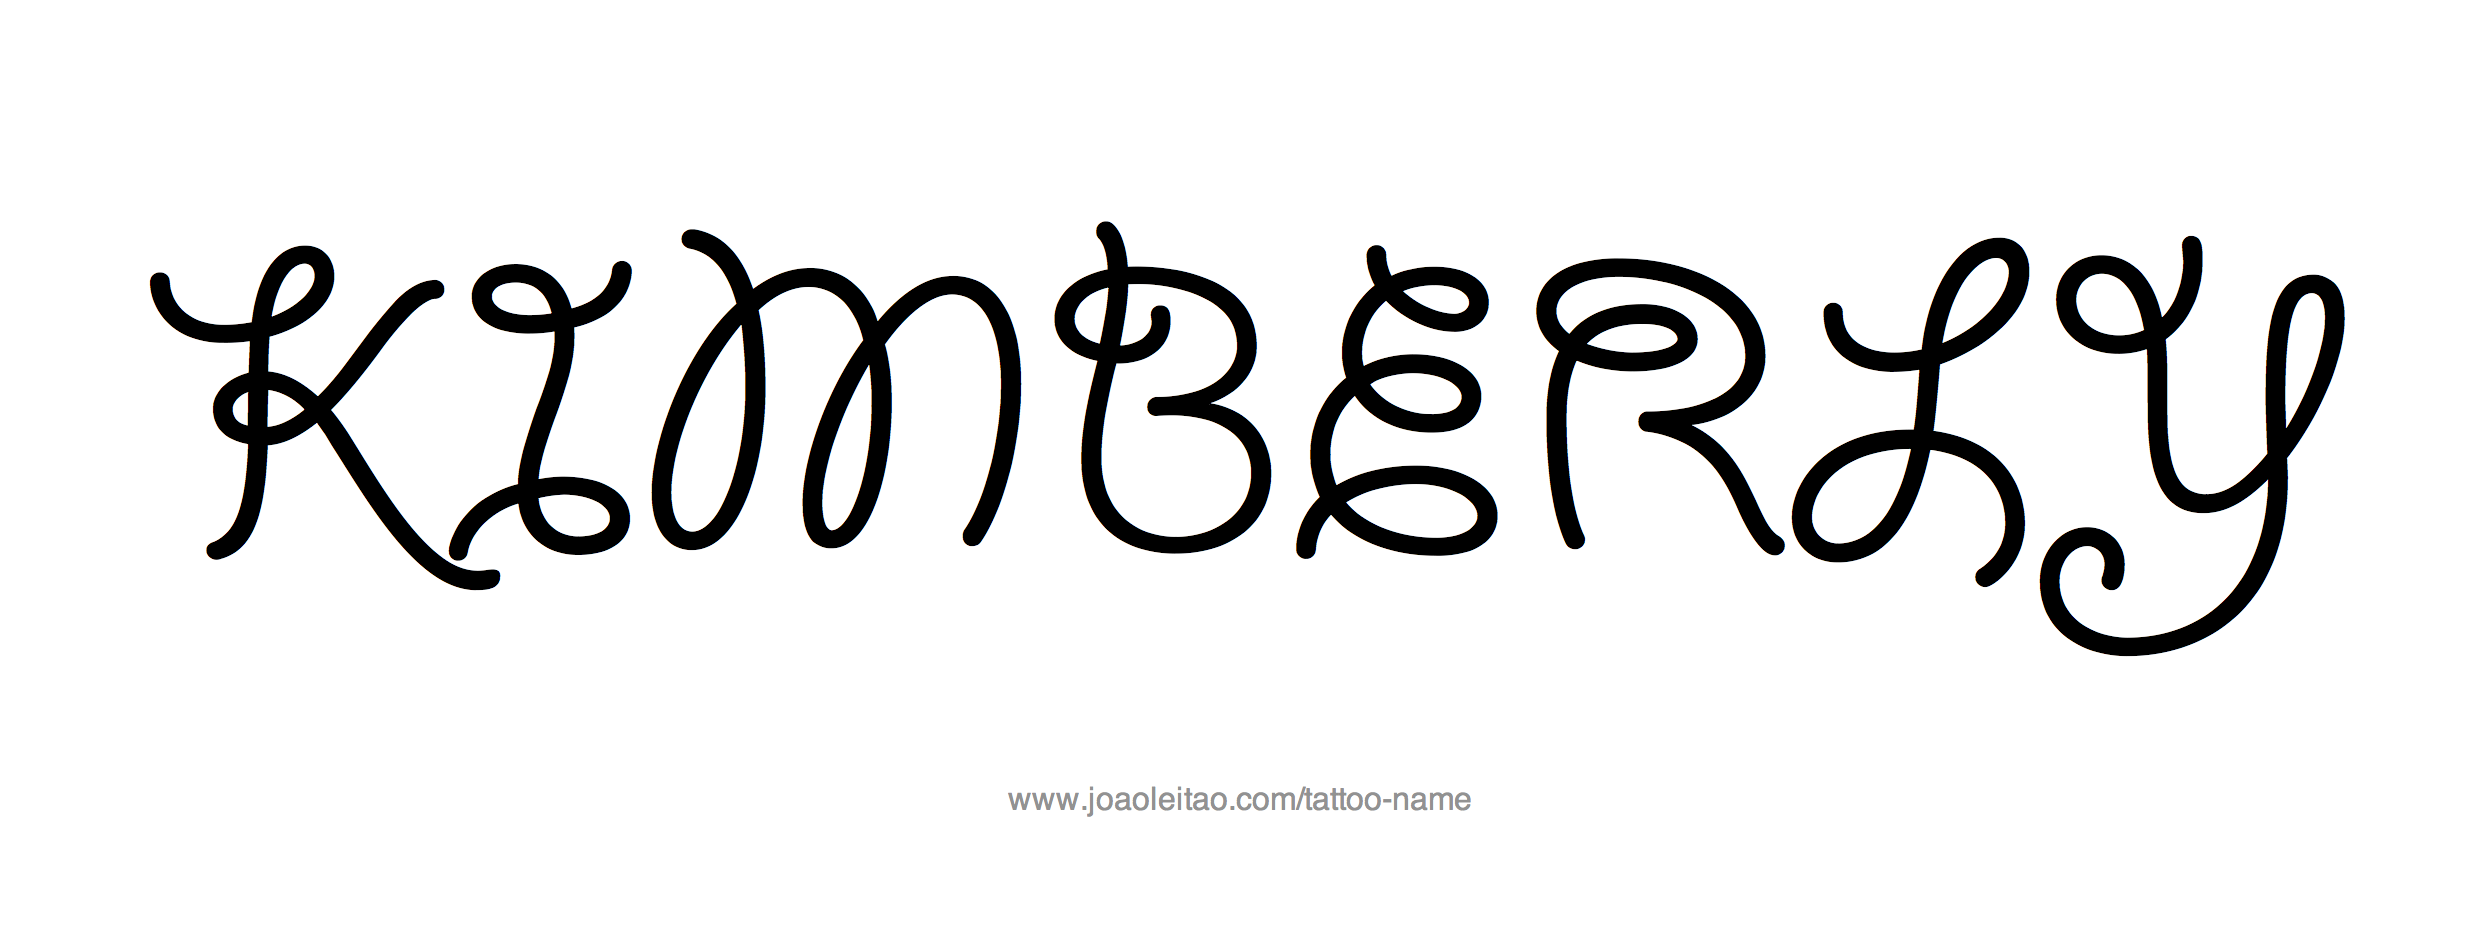 Tattoo Design Name Kimberly